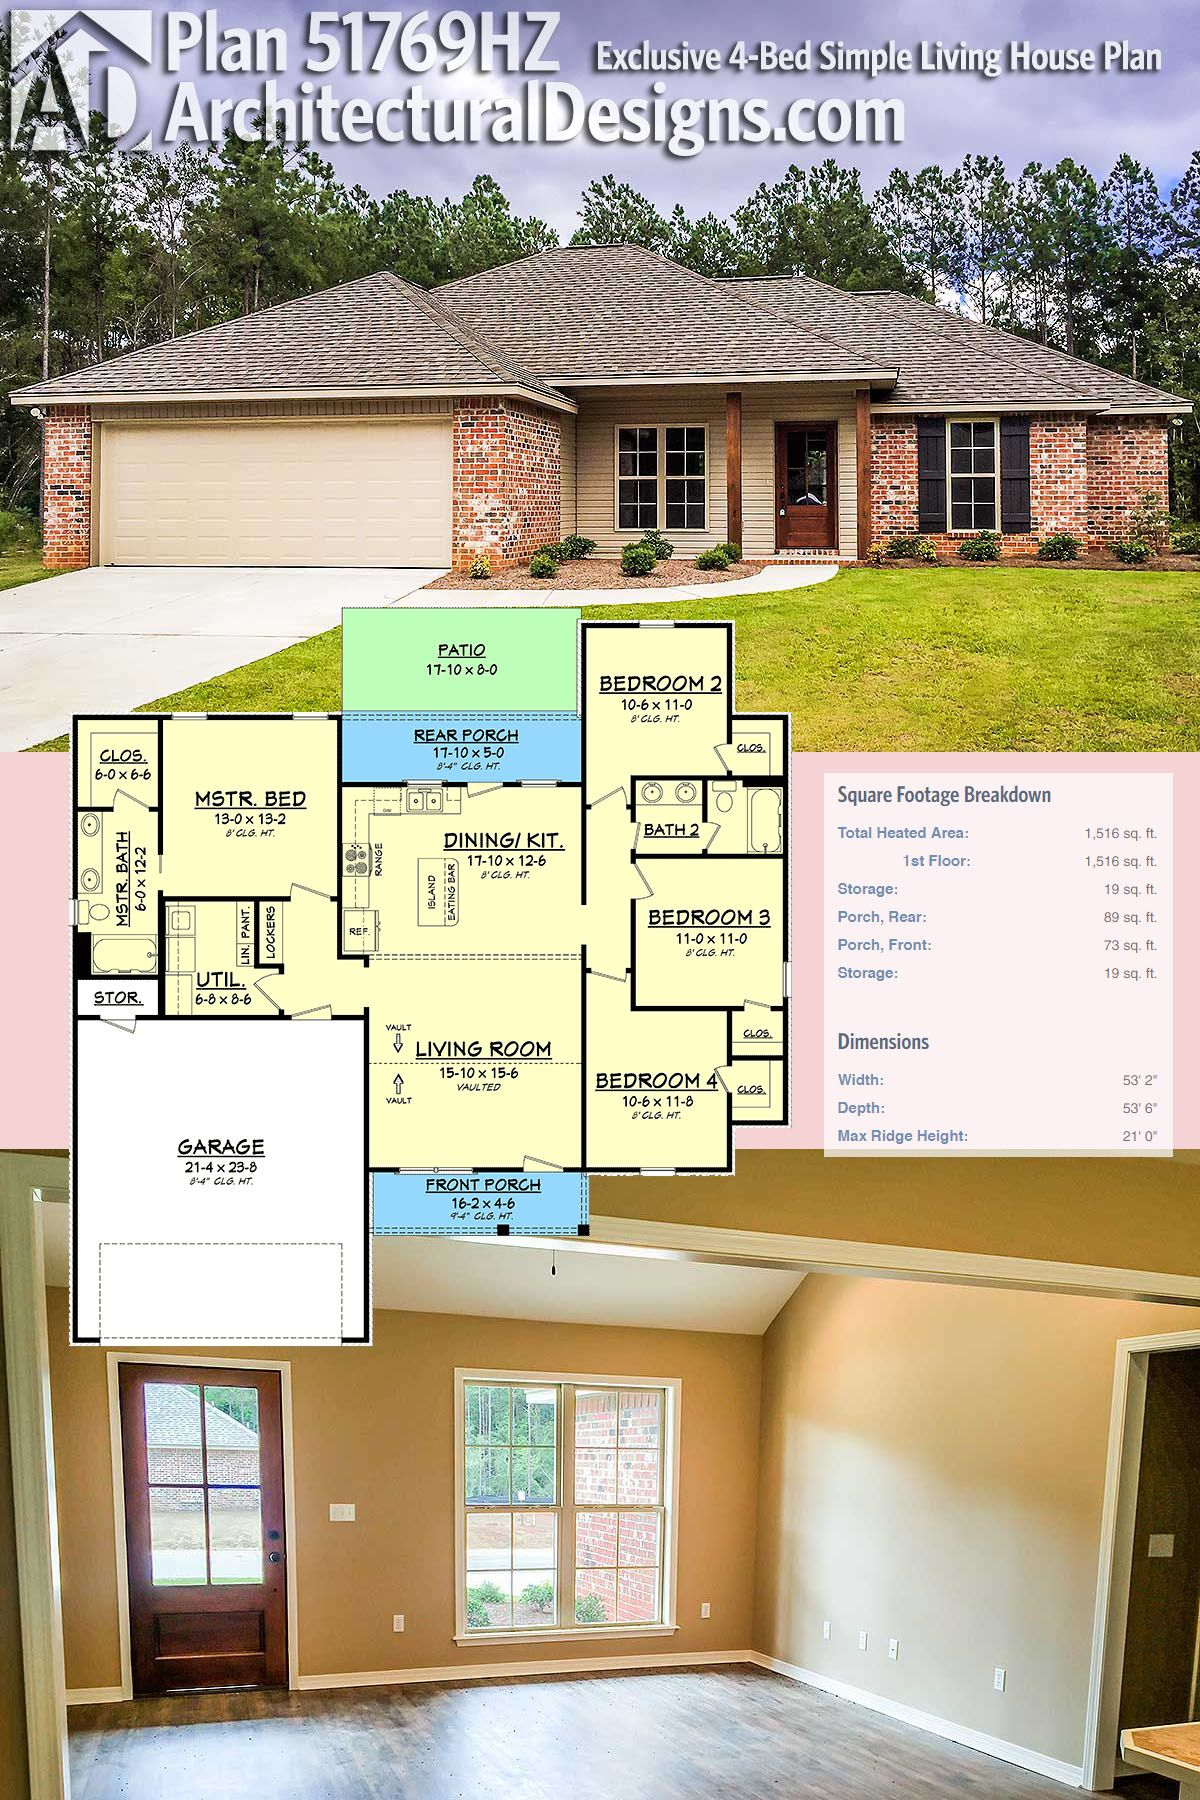 House 4 Bed Architectural Designs Plan